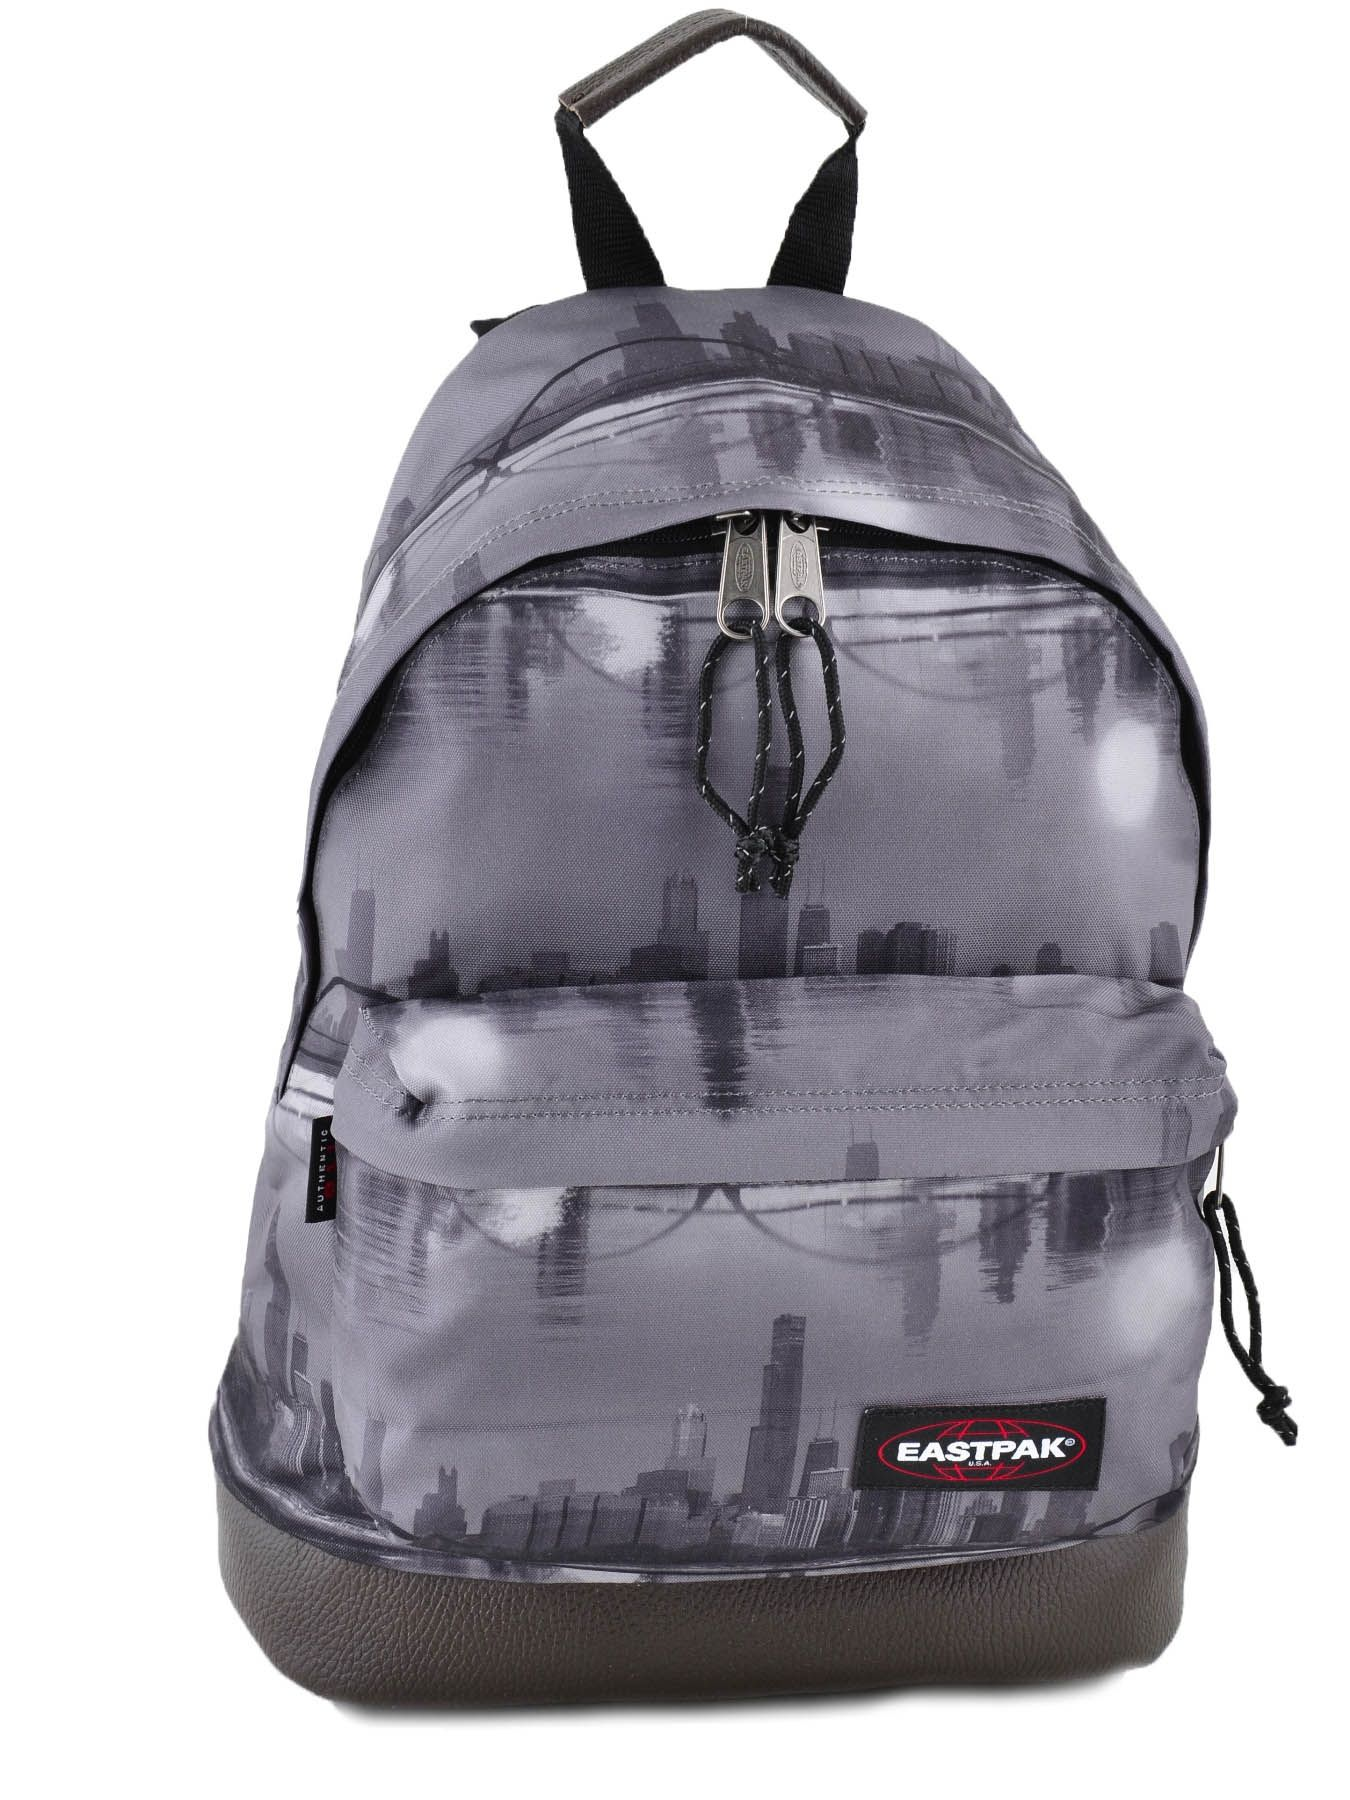 eastpak backpack k811 best prices. Black Bedroom Furniture Sets. Home Design Ideas